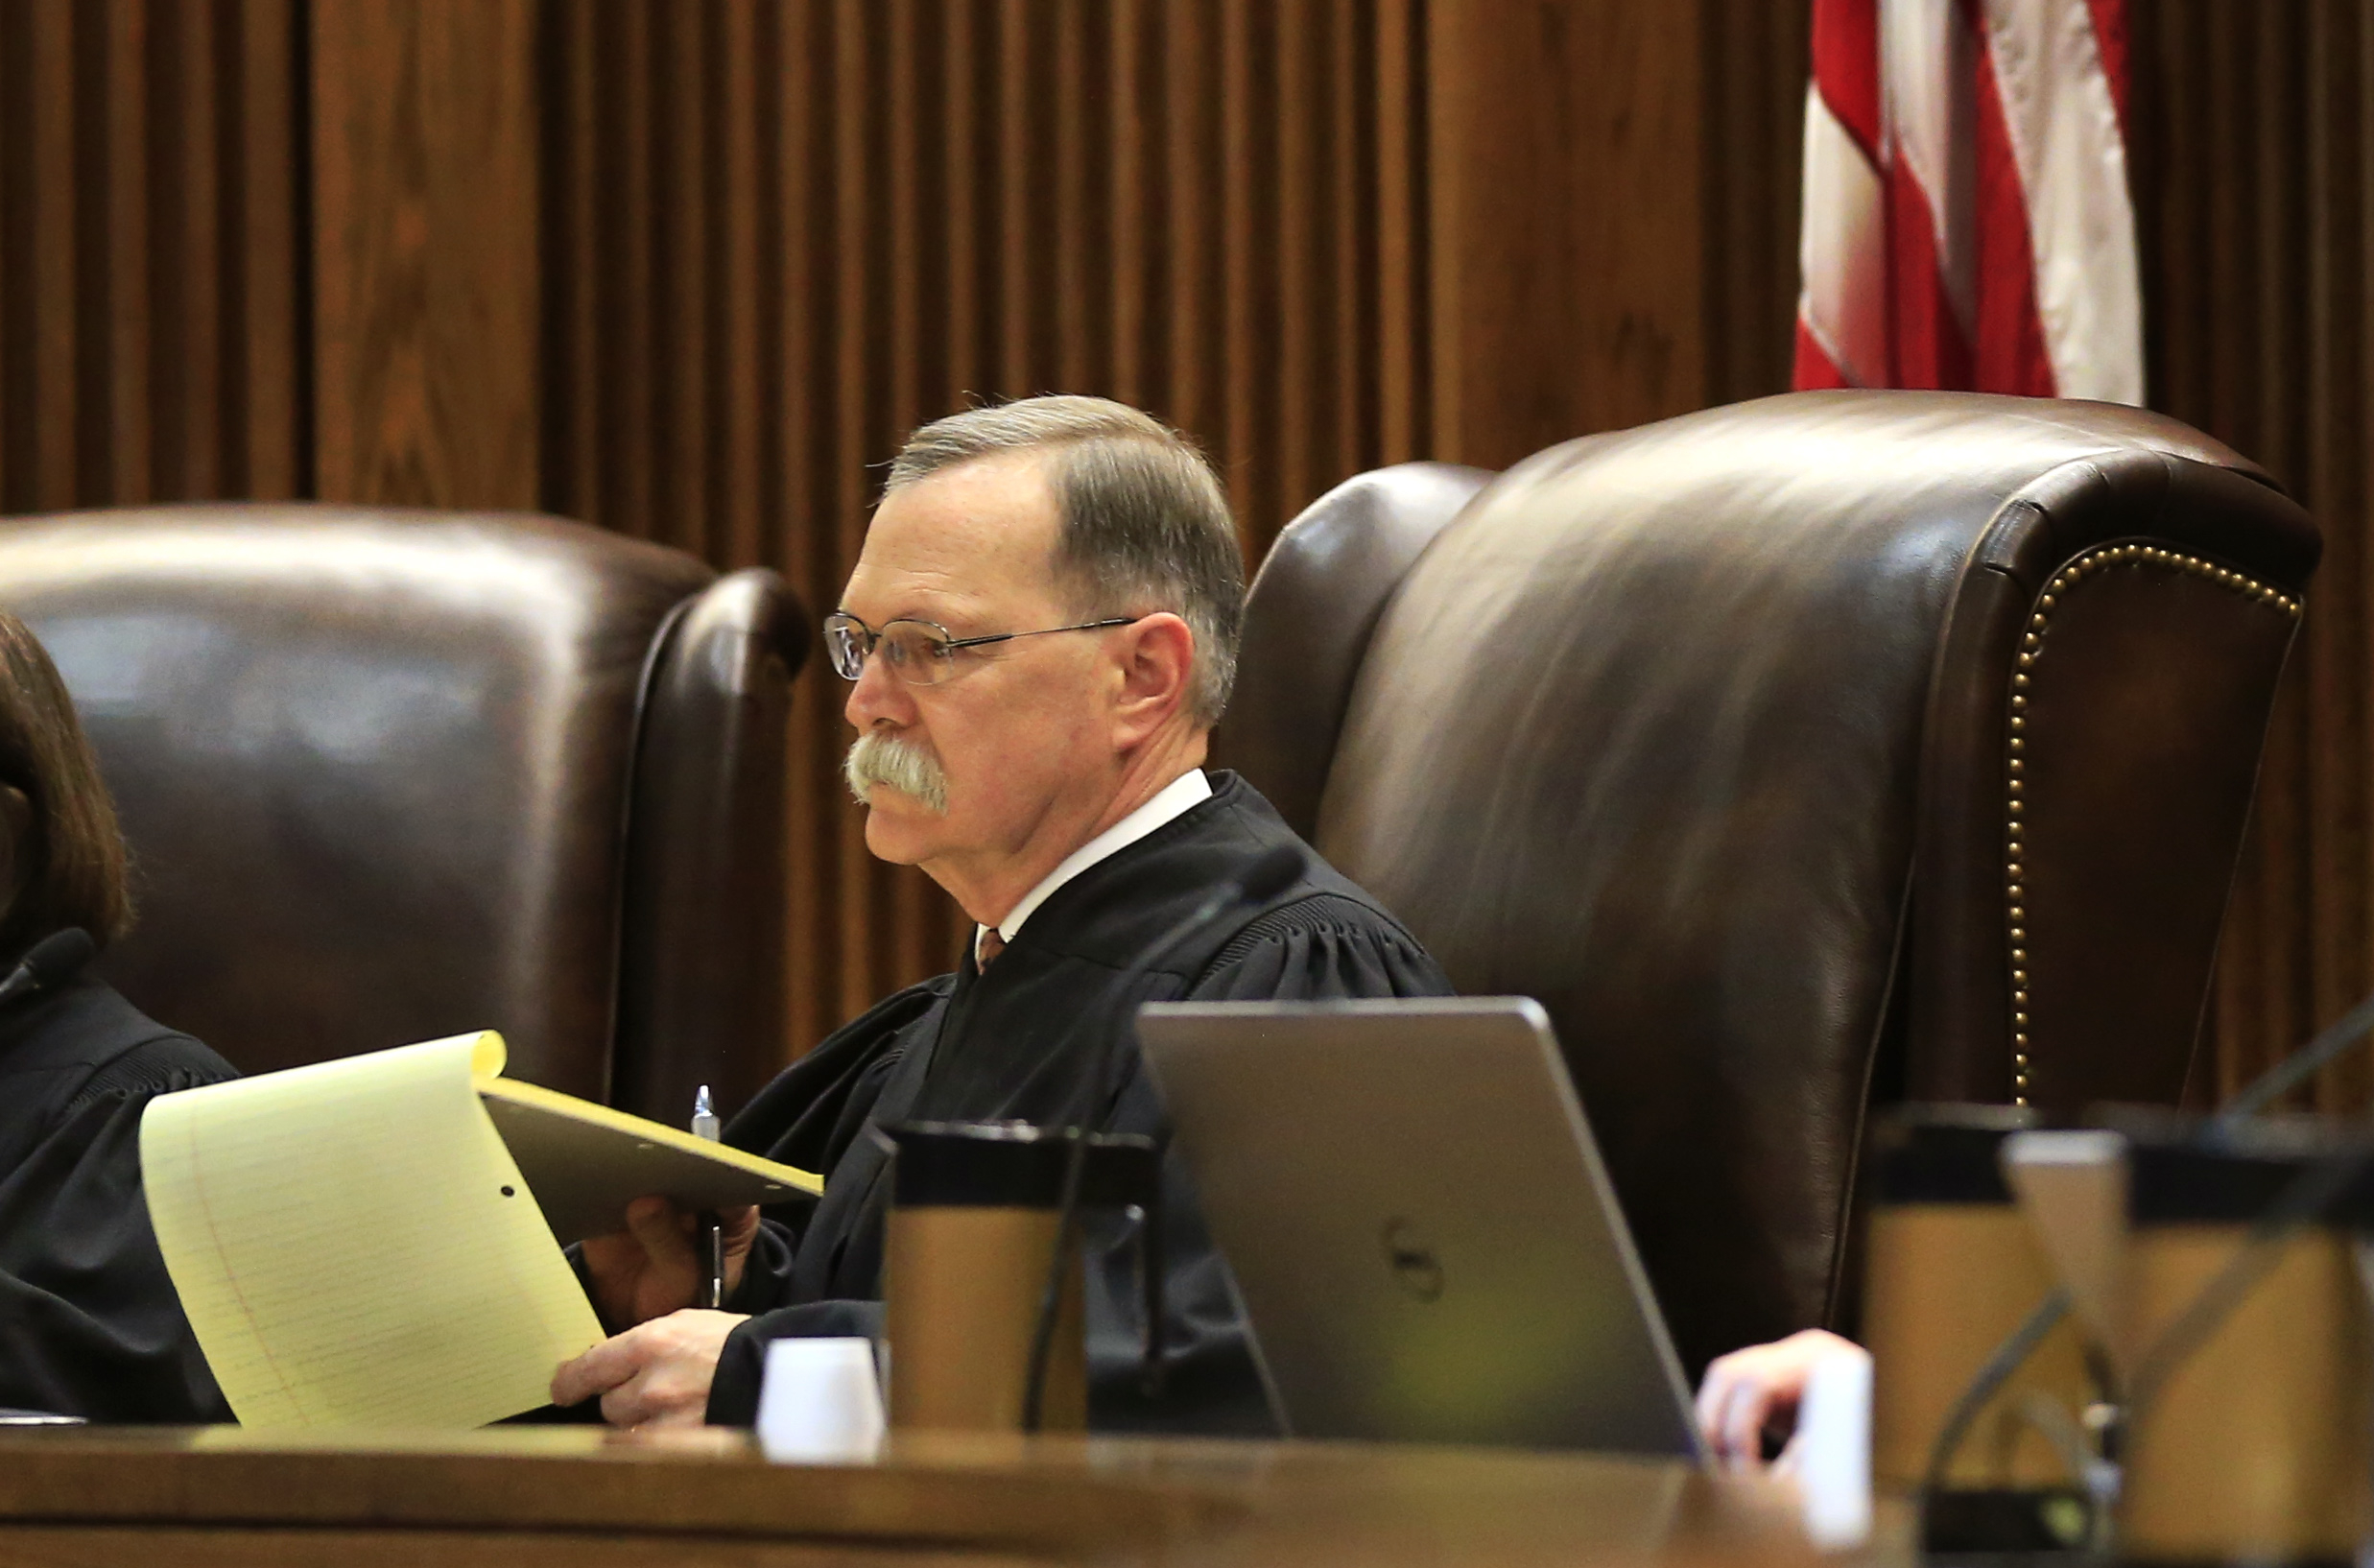 Chief Justice Lawton Nuss takes notes during arguments before the Kansas Supreme Court in Topeka, Kan., on Dec. 14, 2015. Nuss faces a retention election this year — and an unprecedented campaign to vote him out of office. Orlin Wagner/AP